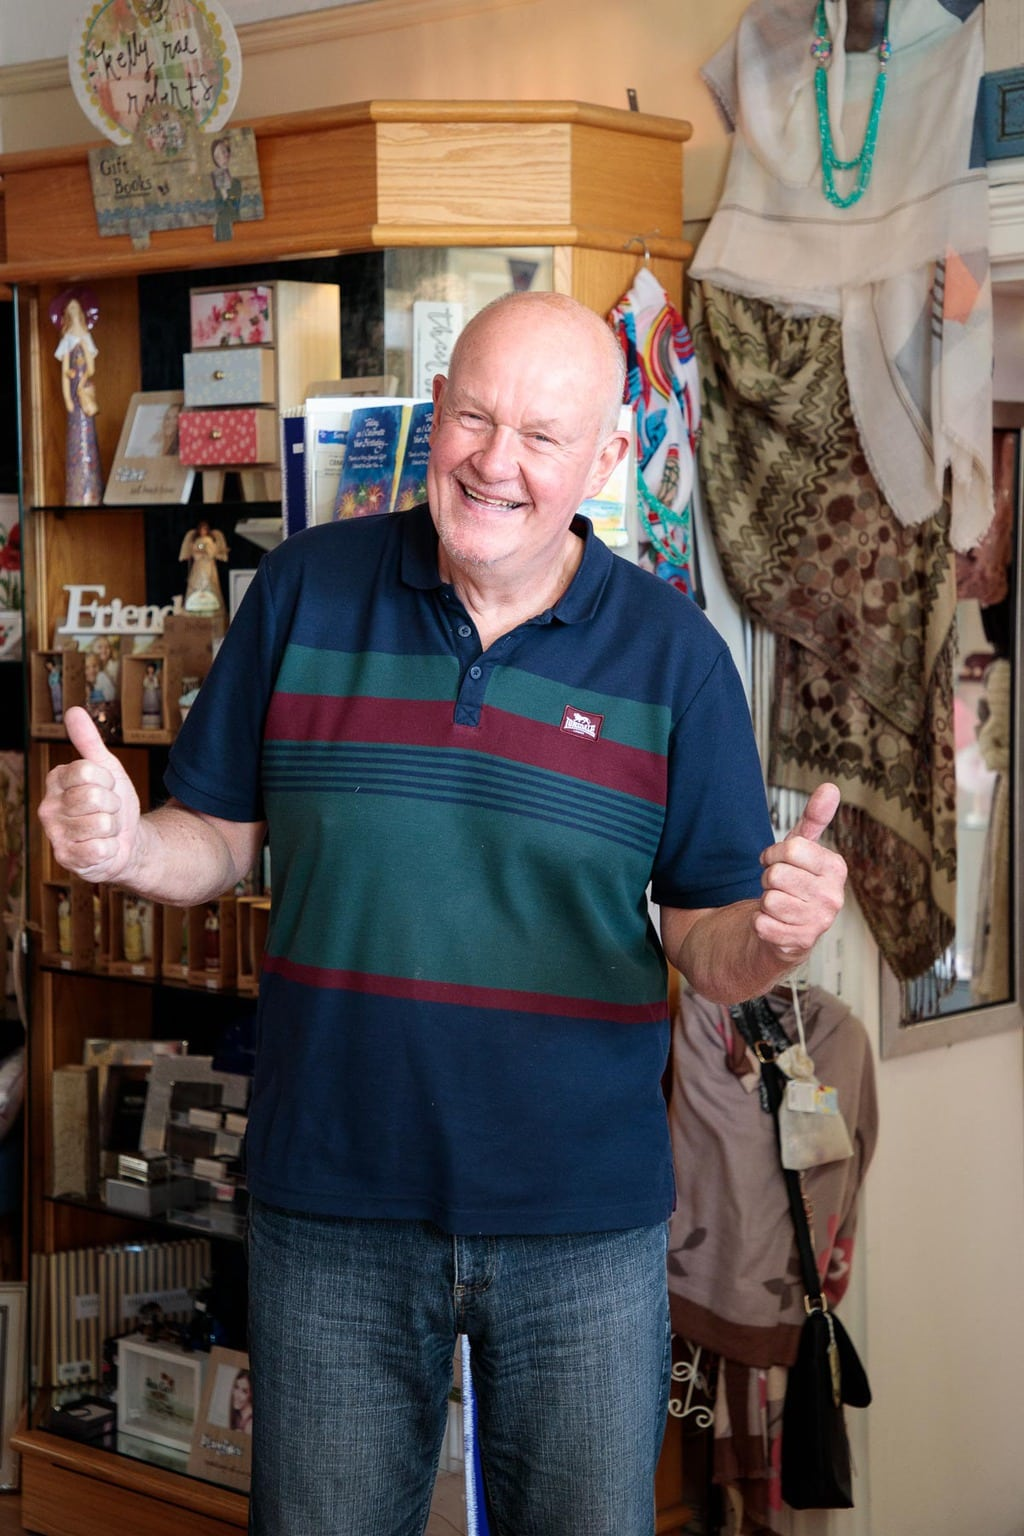 Photo of the proprietor of a gift shop in Whiteabbey, Northern Ireland, just outside of Belfast.